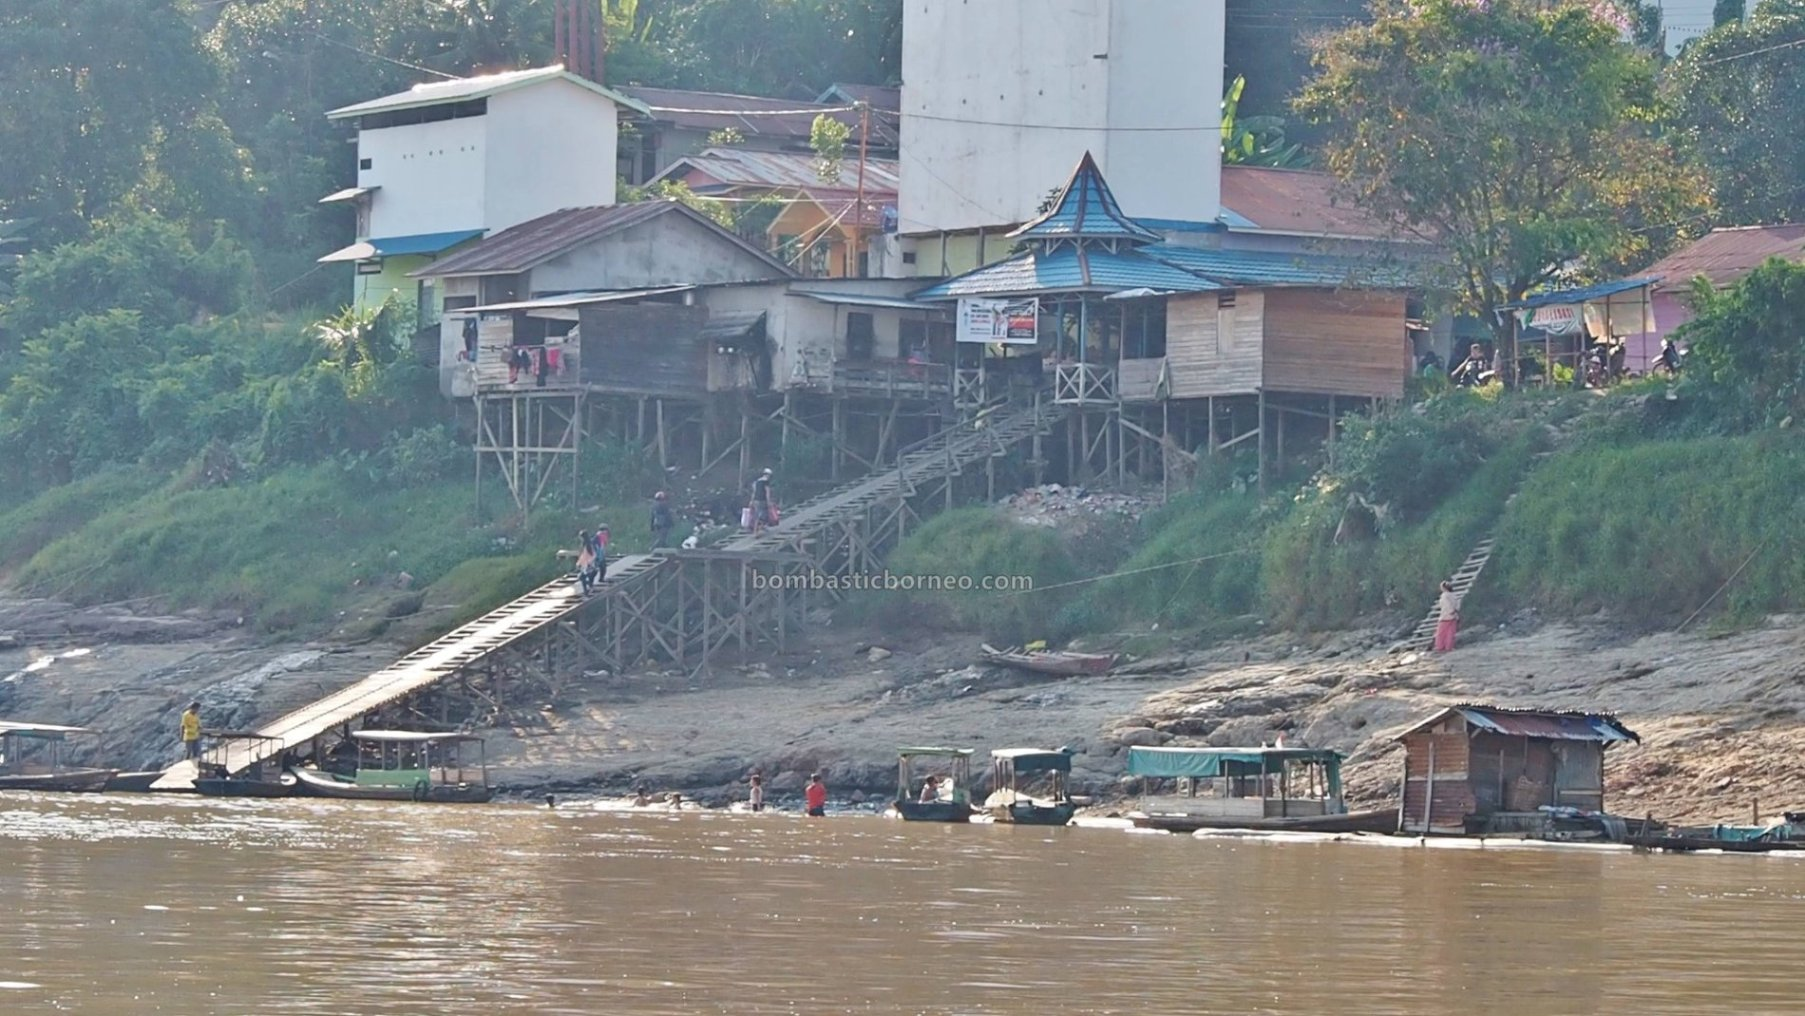 rumah lanting, rumah terapung, floating house, authentic, traditional, Indonesia, West Kalimantan, Nanga Pinoh, Sungai Melawi, Obyek wisata, Tourism, tourist attraction, travel guide, Trans Borneo, 默拉维河栏登